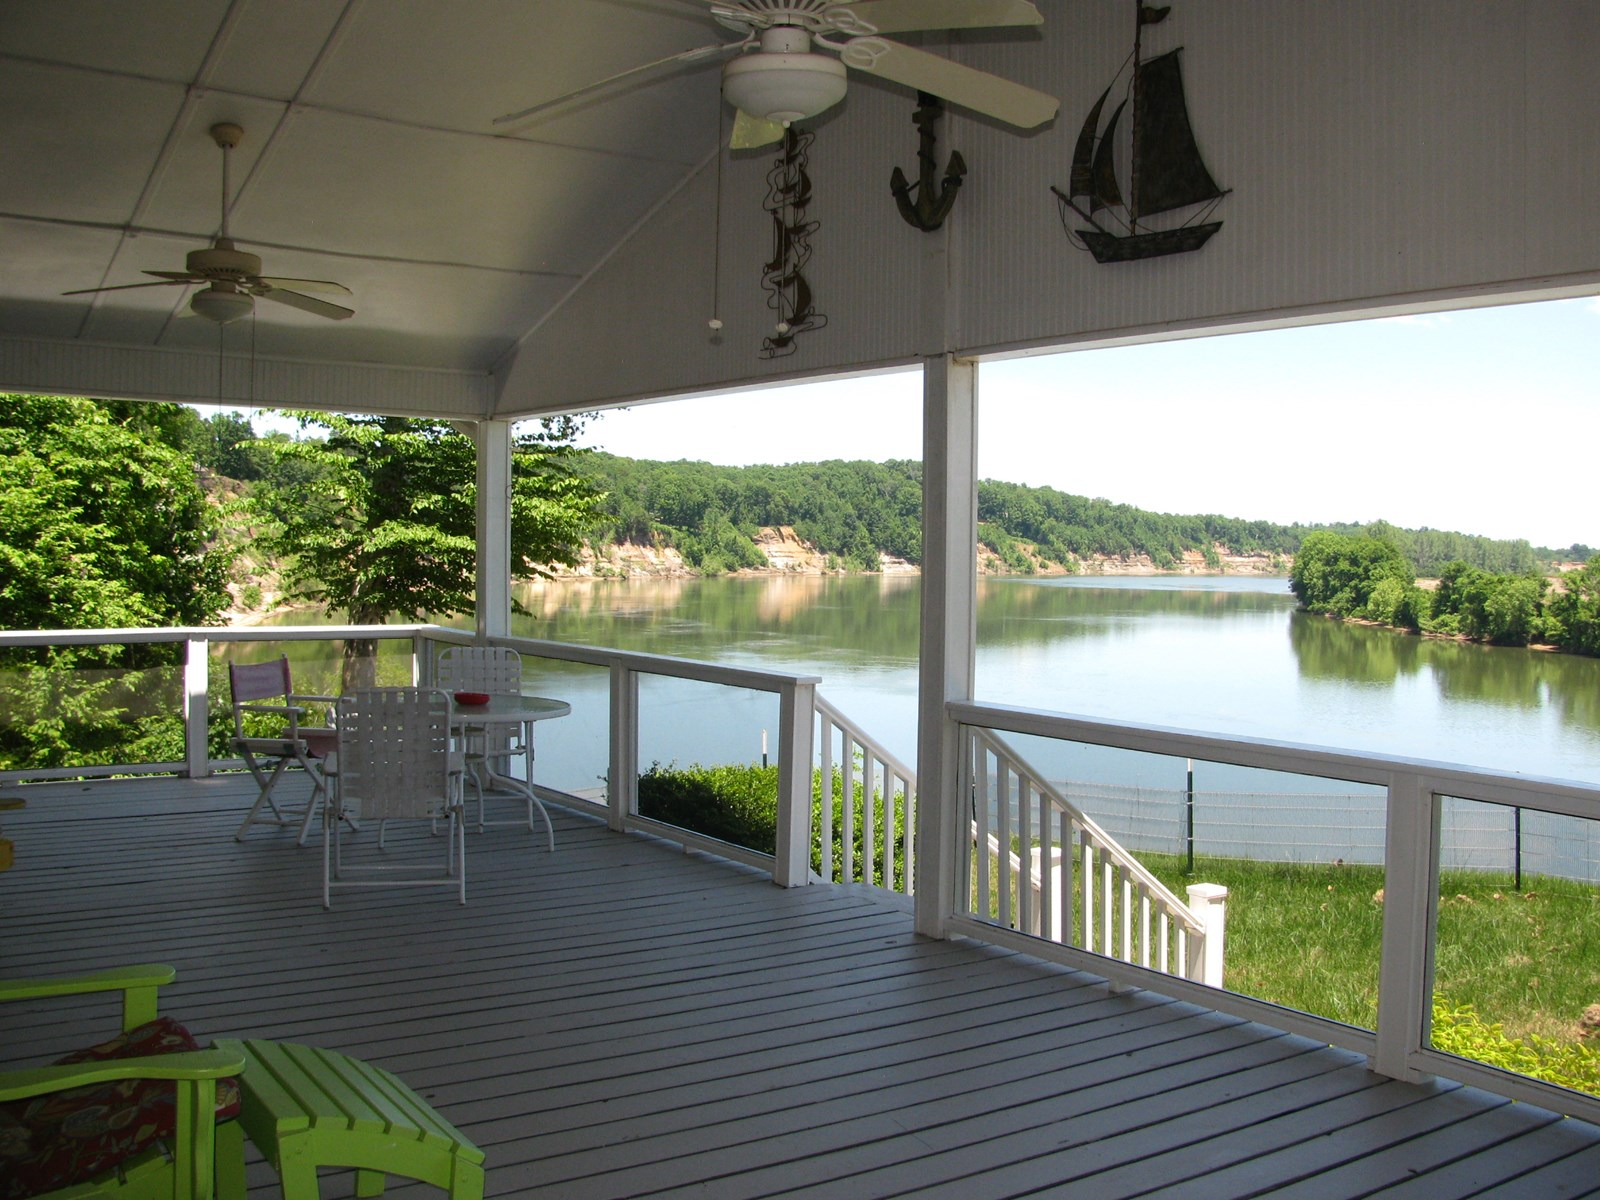 RIVER FRONT HOME IN TN, 3 BEDROOM 2 BATH, AWESOME VIEWS